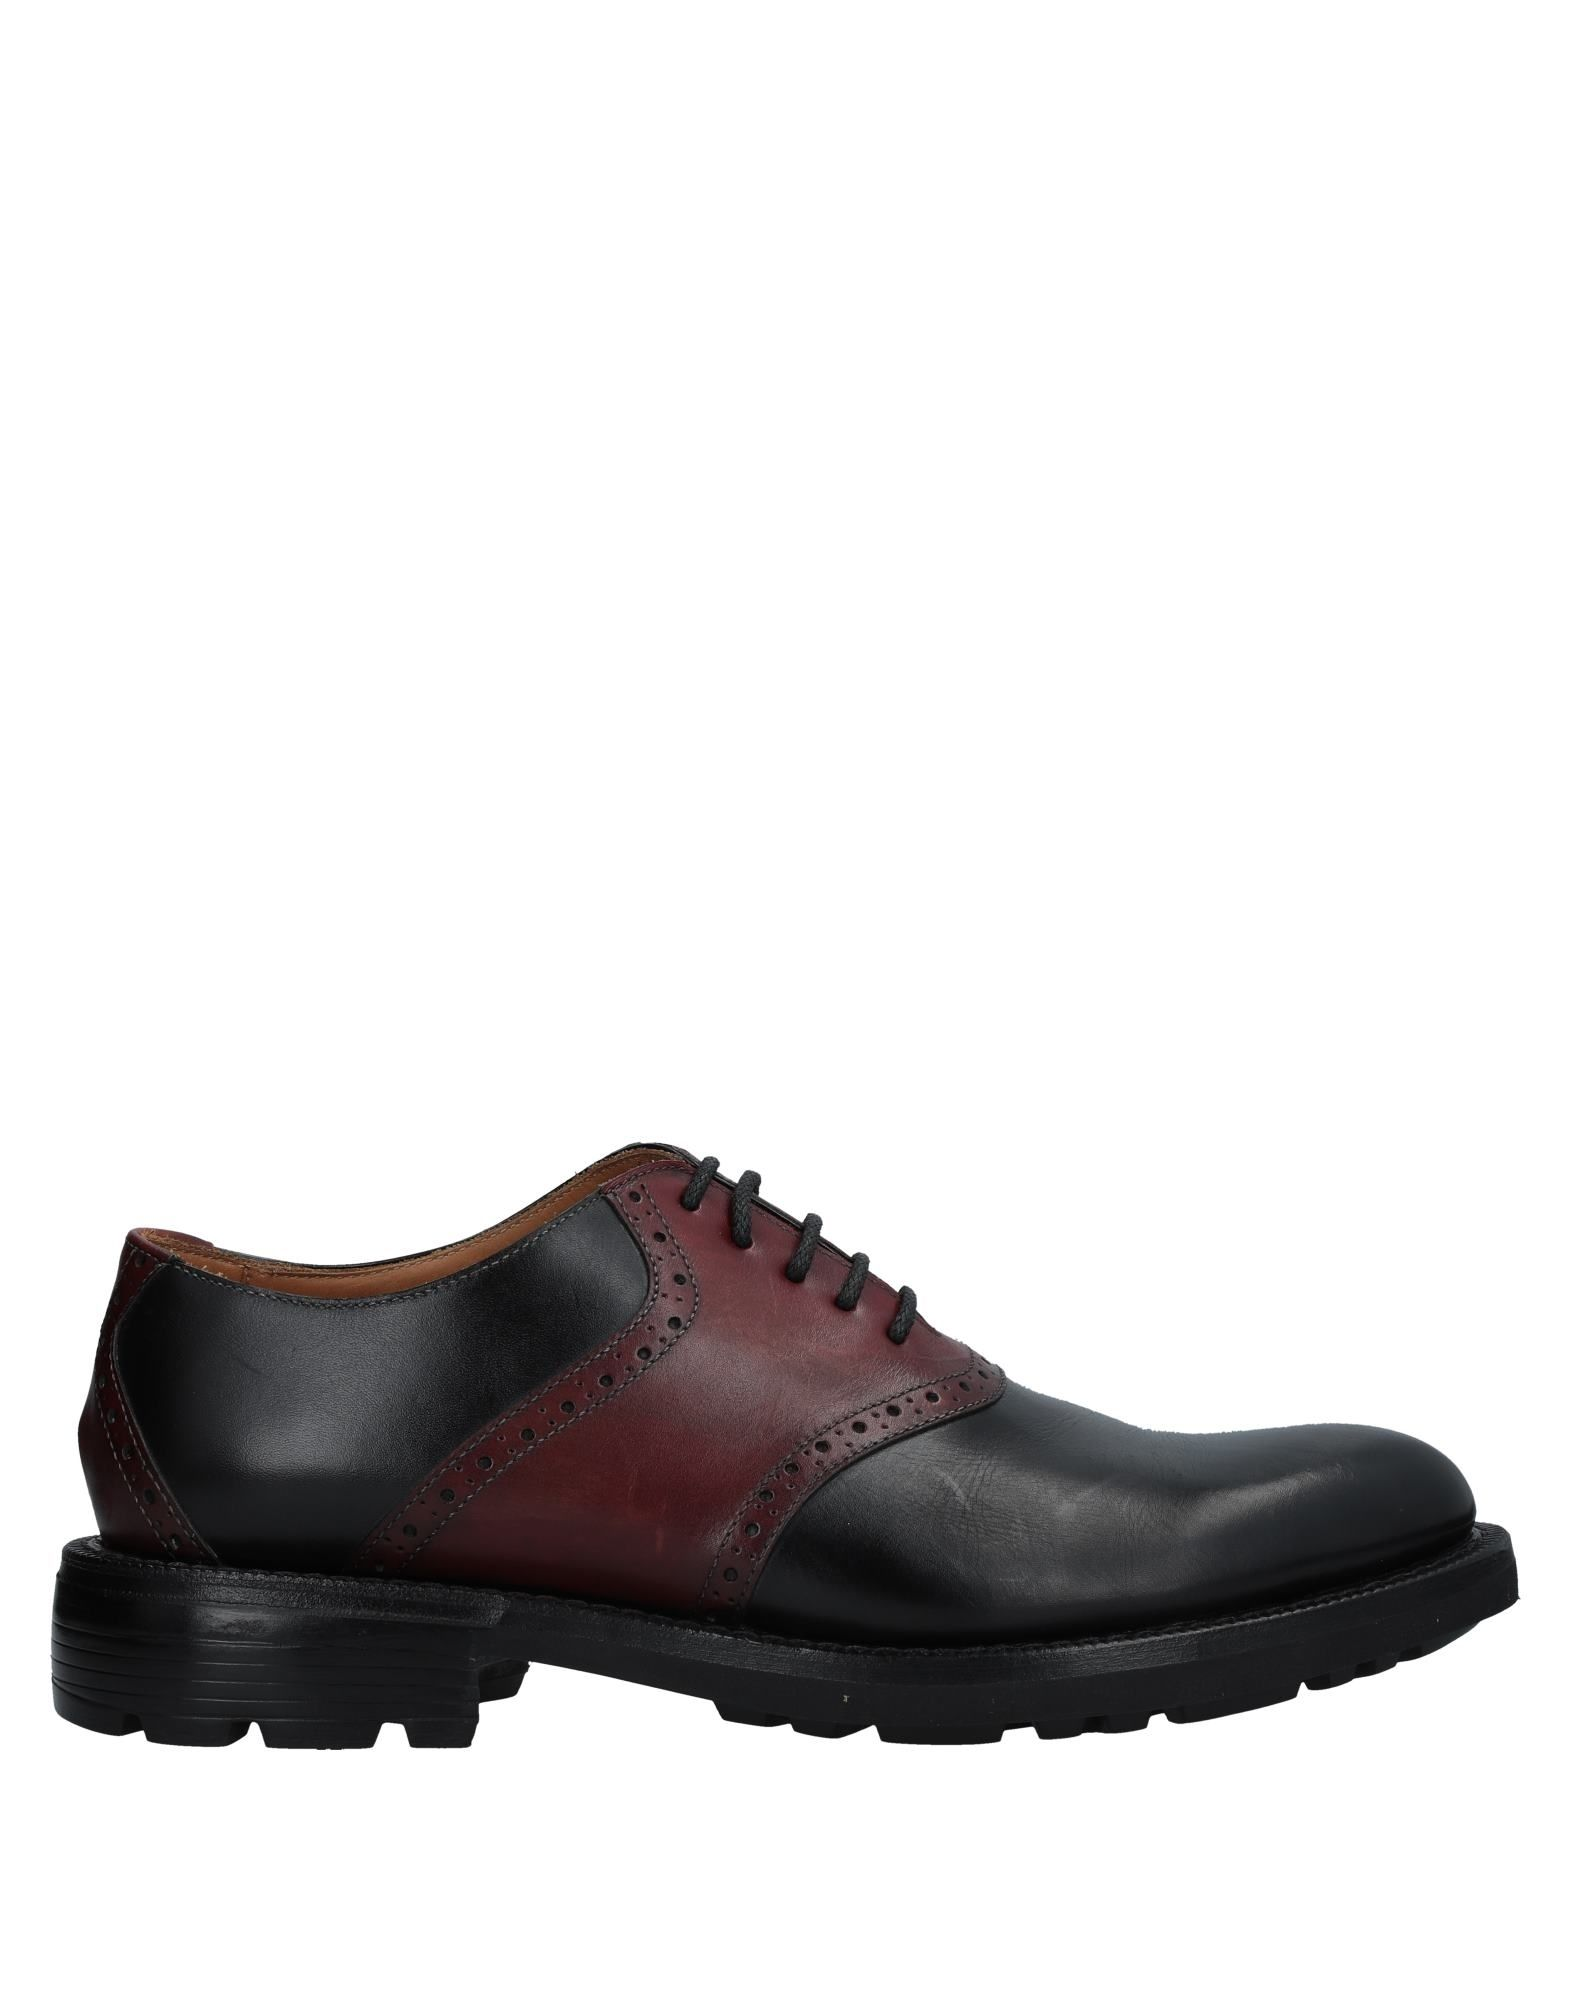 CAMPANILE Laced Shoes in Black